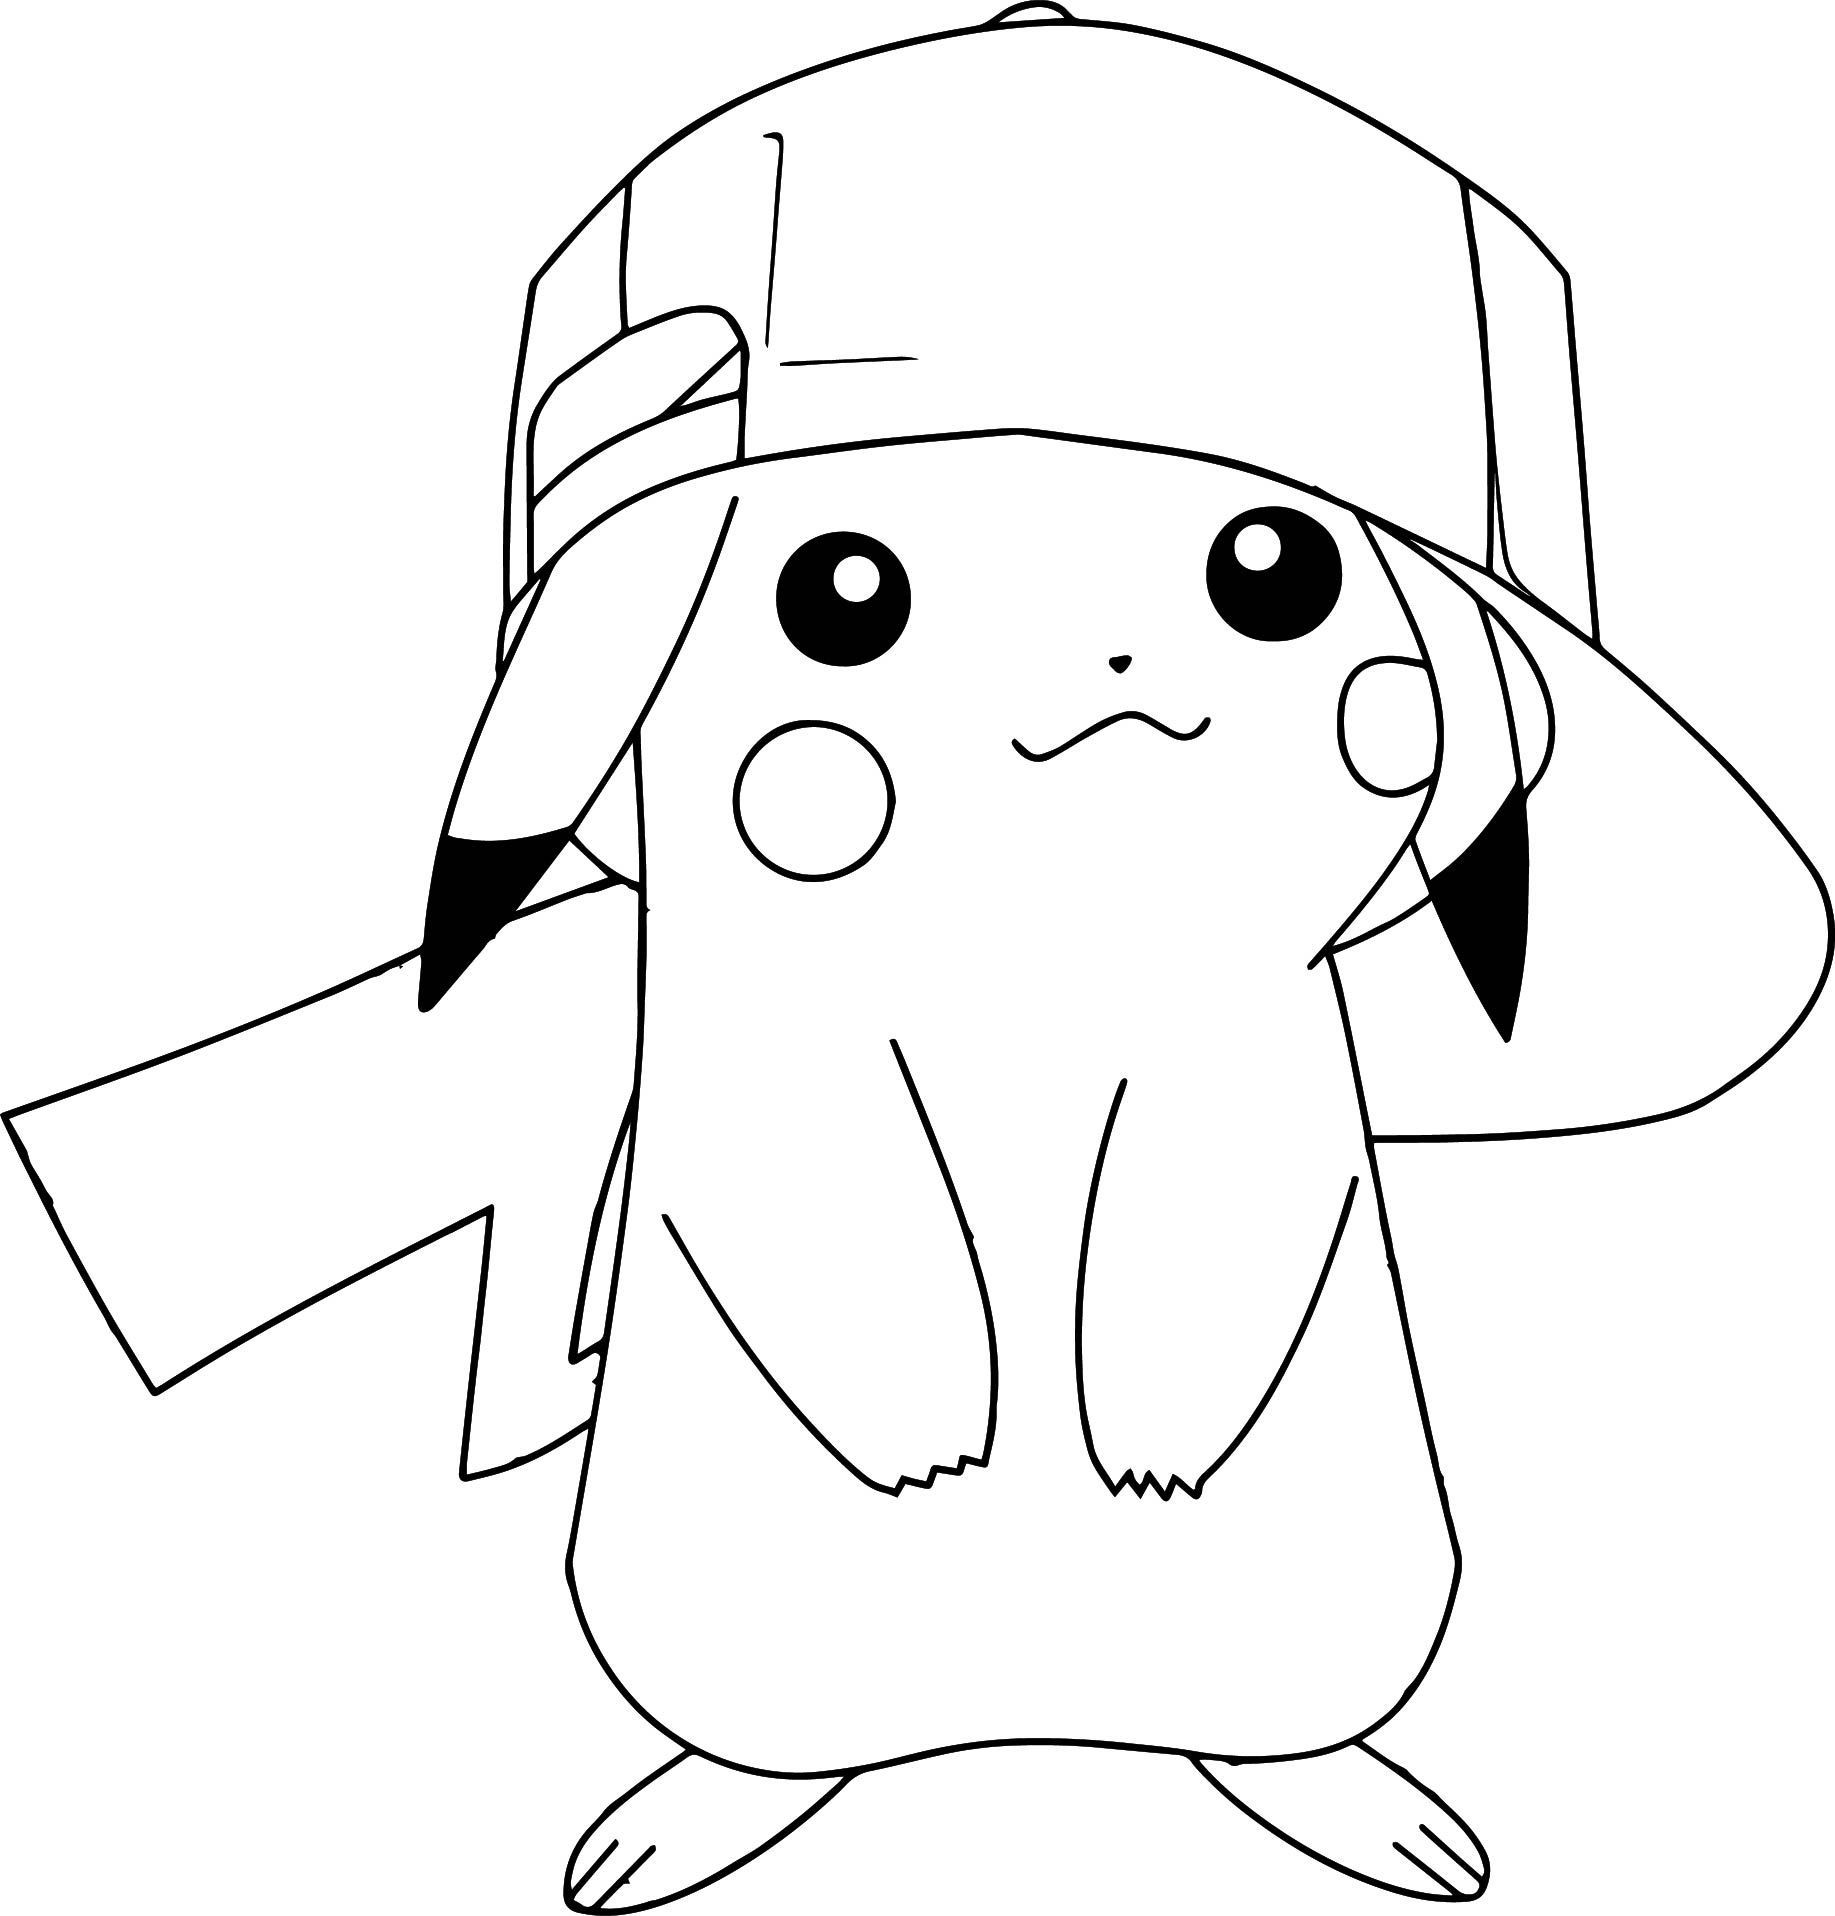 Ordinaire Pokemon Coloring Pages Pikachu